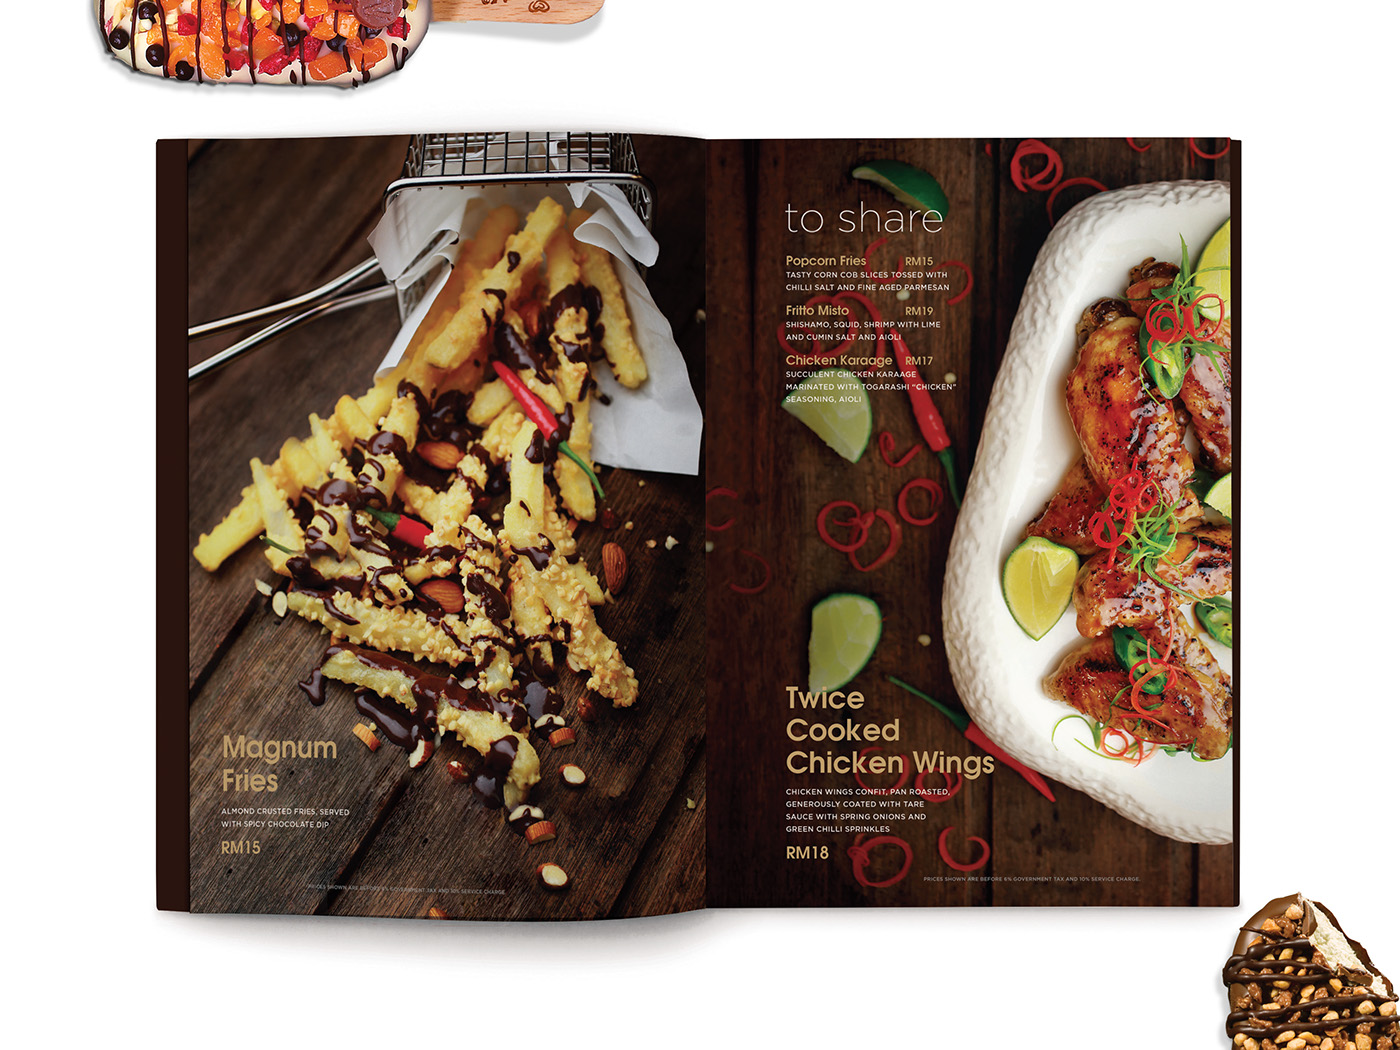 Magnum Pleasure Store menu design inner page layout design with beautiful food styling and photography of fries and chicken wings.